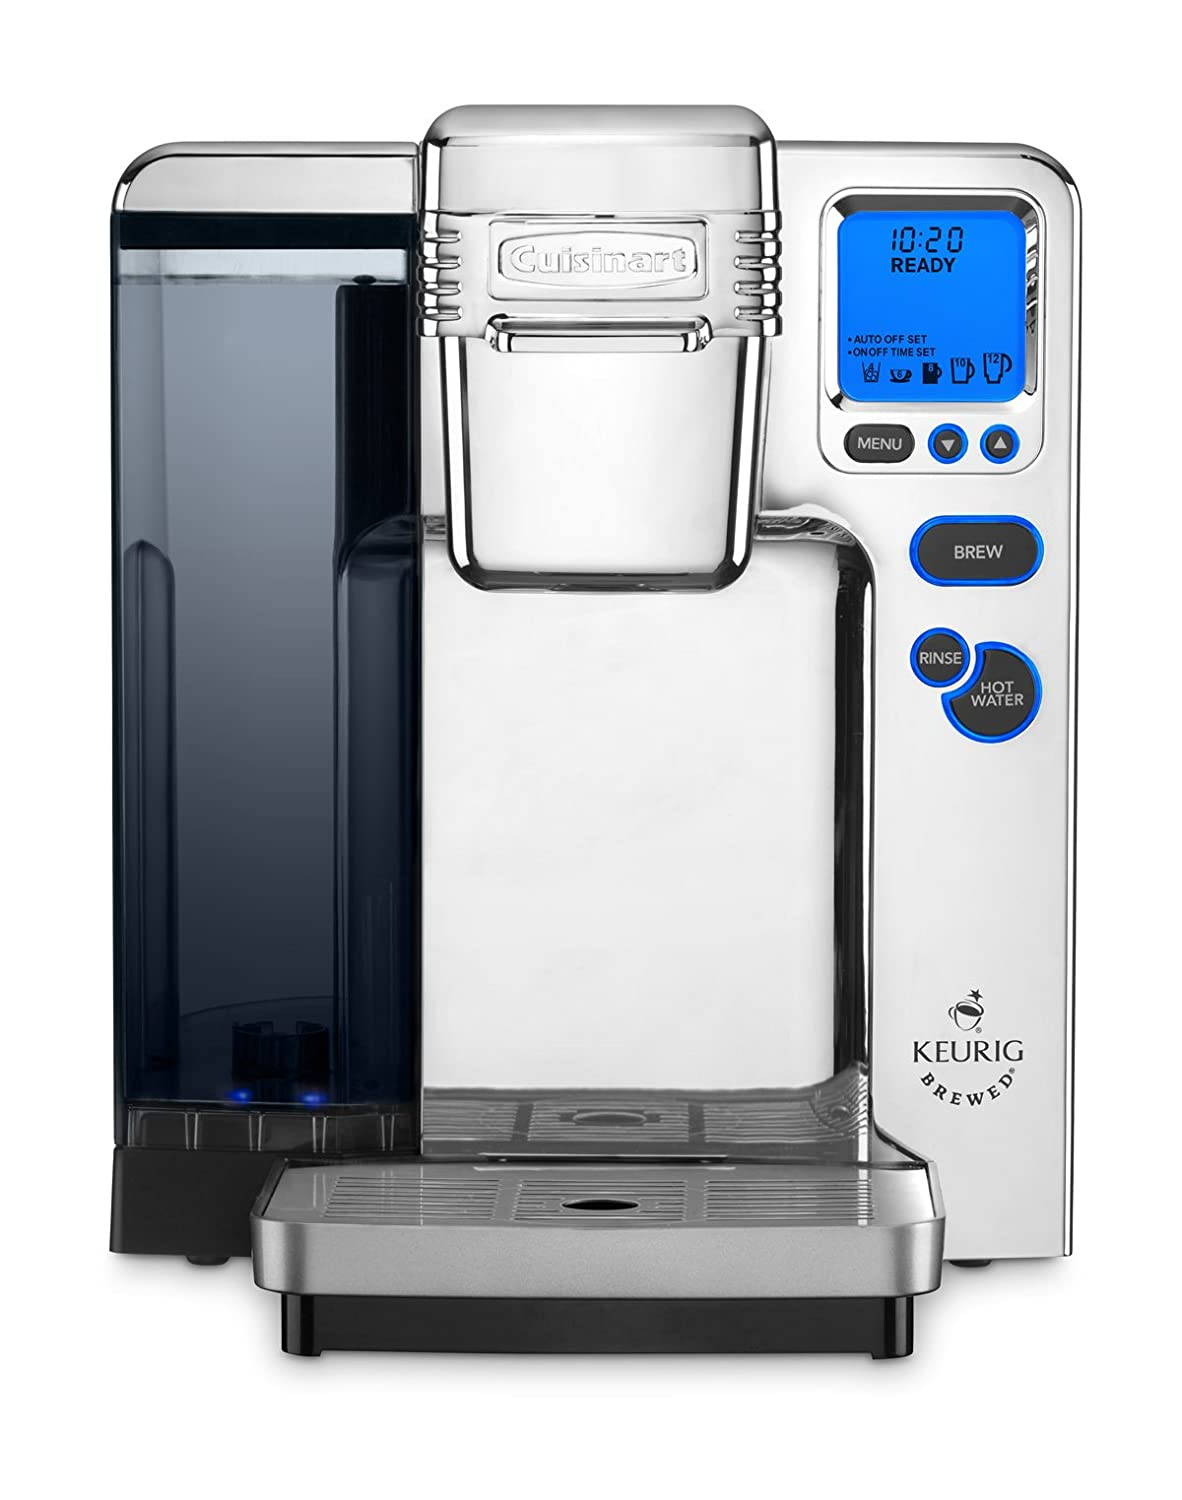 Cuisinart Single Cup Coffee Maker Vs Keurig : Cuisinart ss 700 dimensions crafts